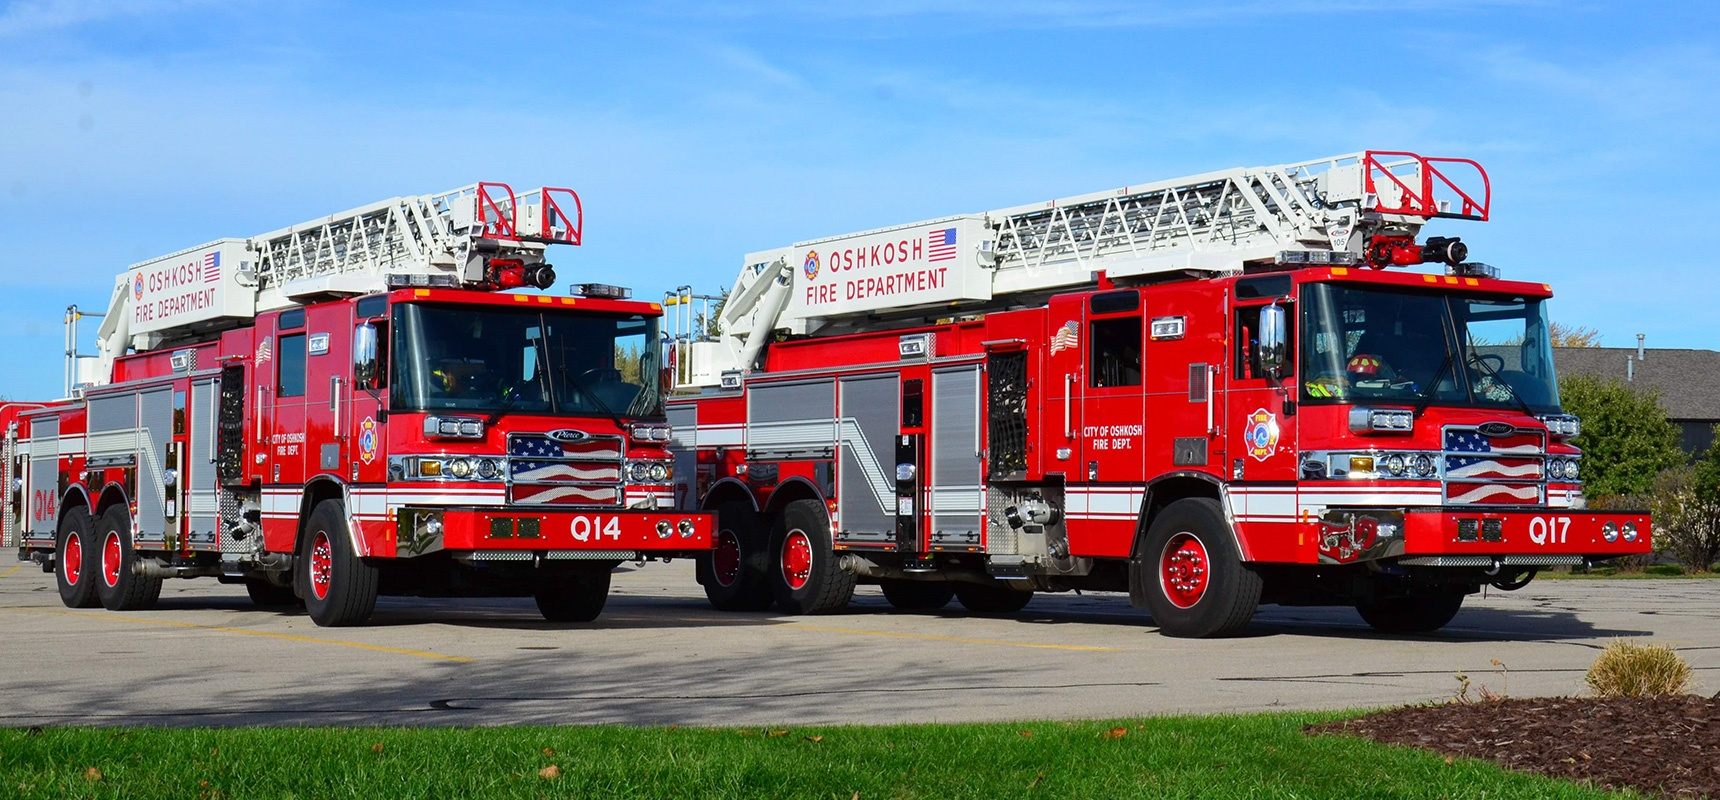 Pierce-Places-TAK-4-T3-System-Equipped-Quantum-Aerials-Into-Service-At-The-Oshkosh-Fire-Department_Header.jpg